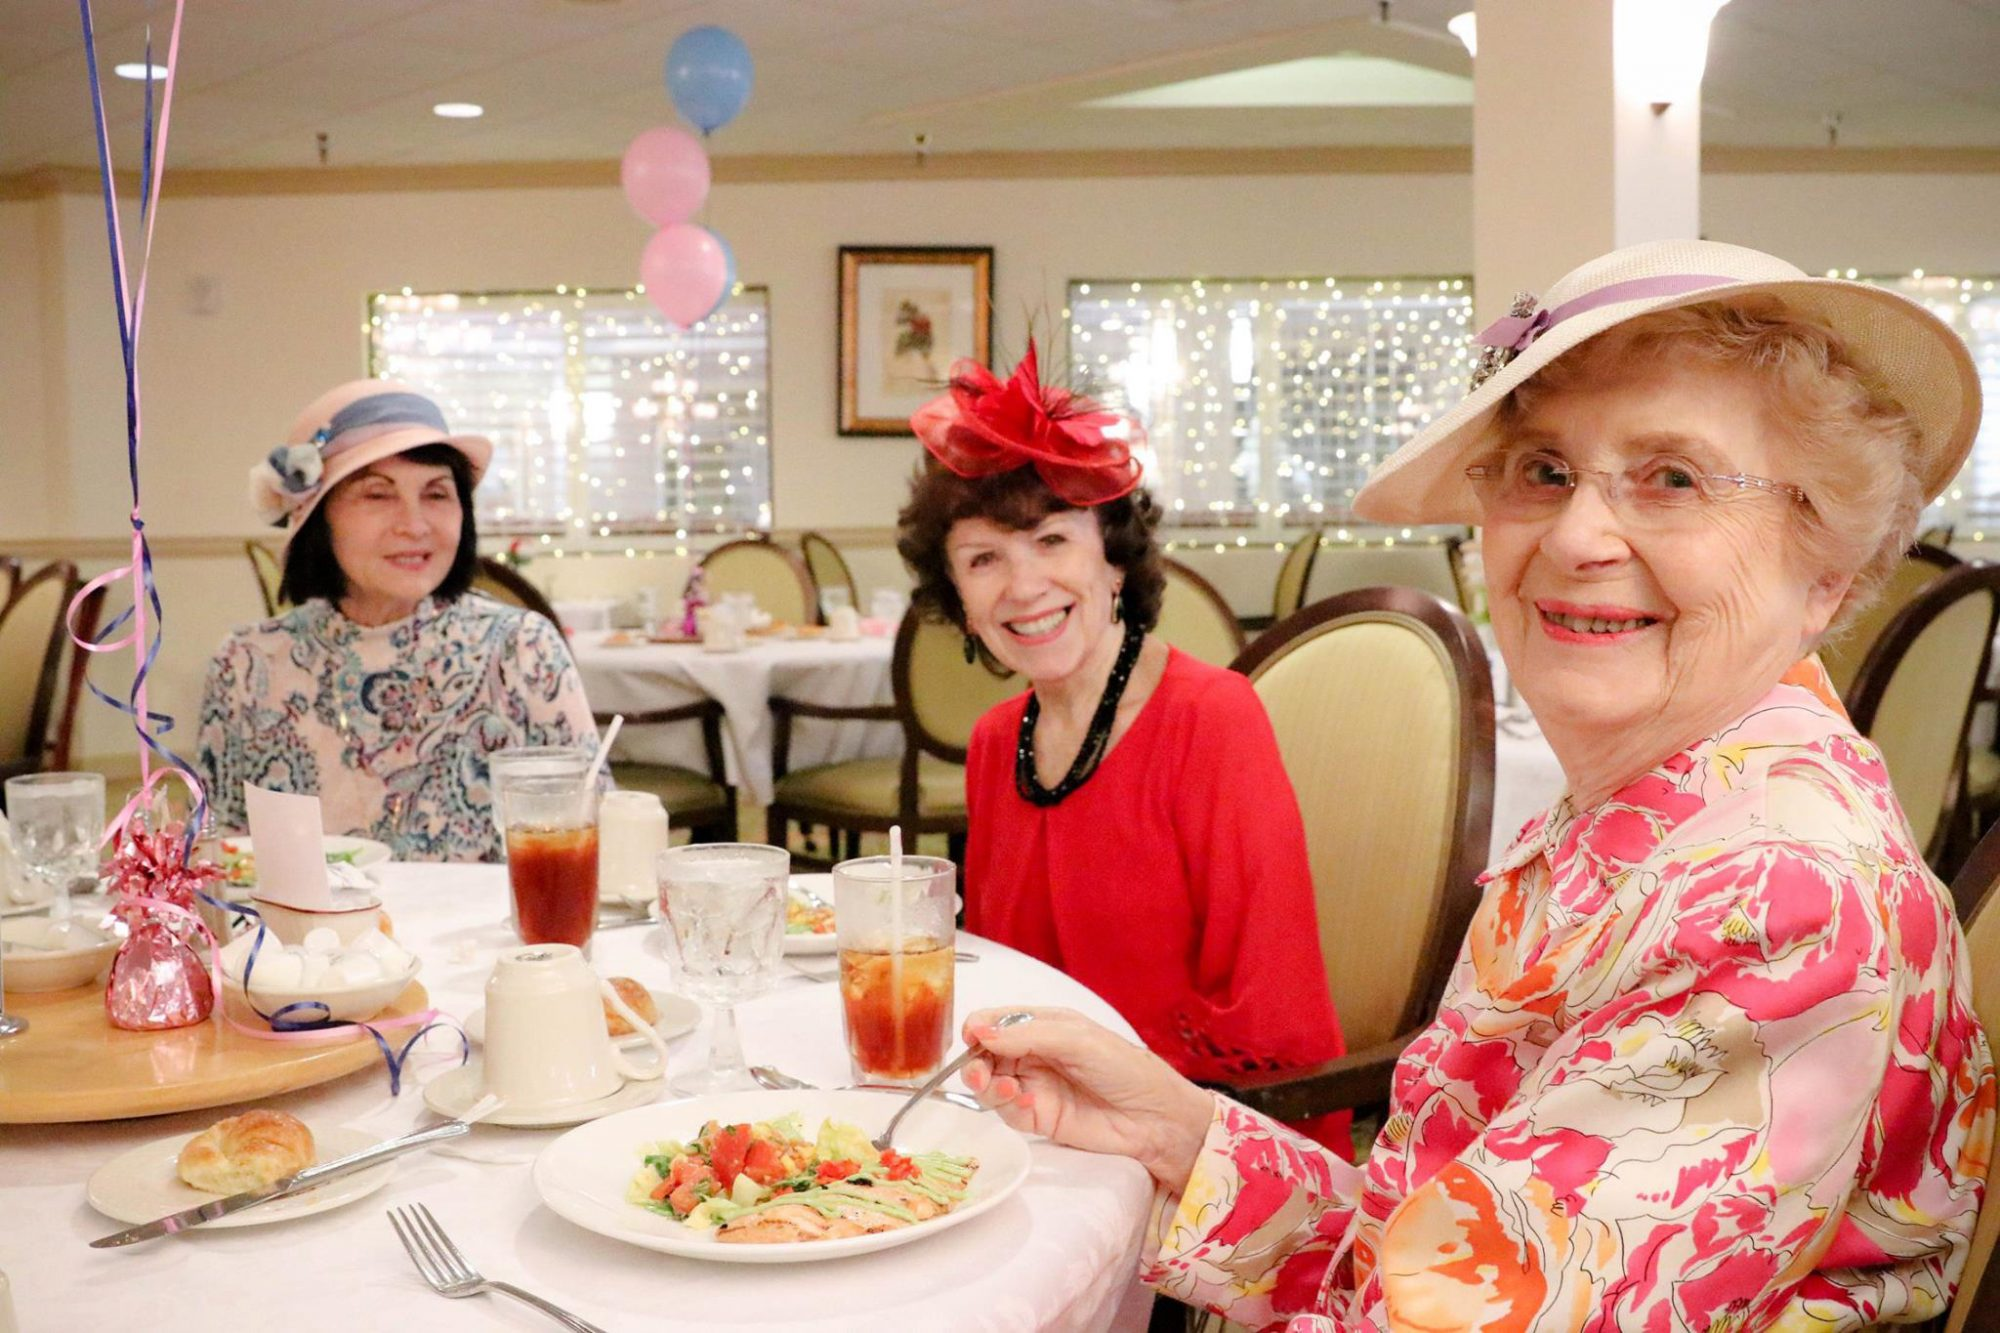 Florida Seniors Throw Sweetest Baby Shower for Meghan Markle and Prince Harry — with Fabulous Hats! shower-4